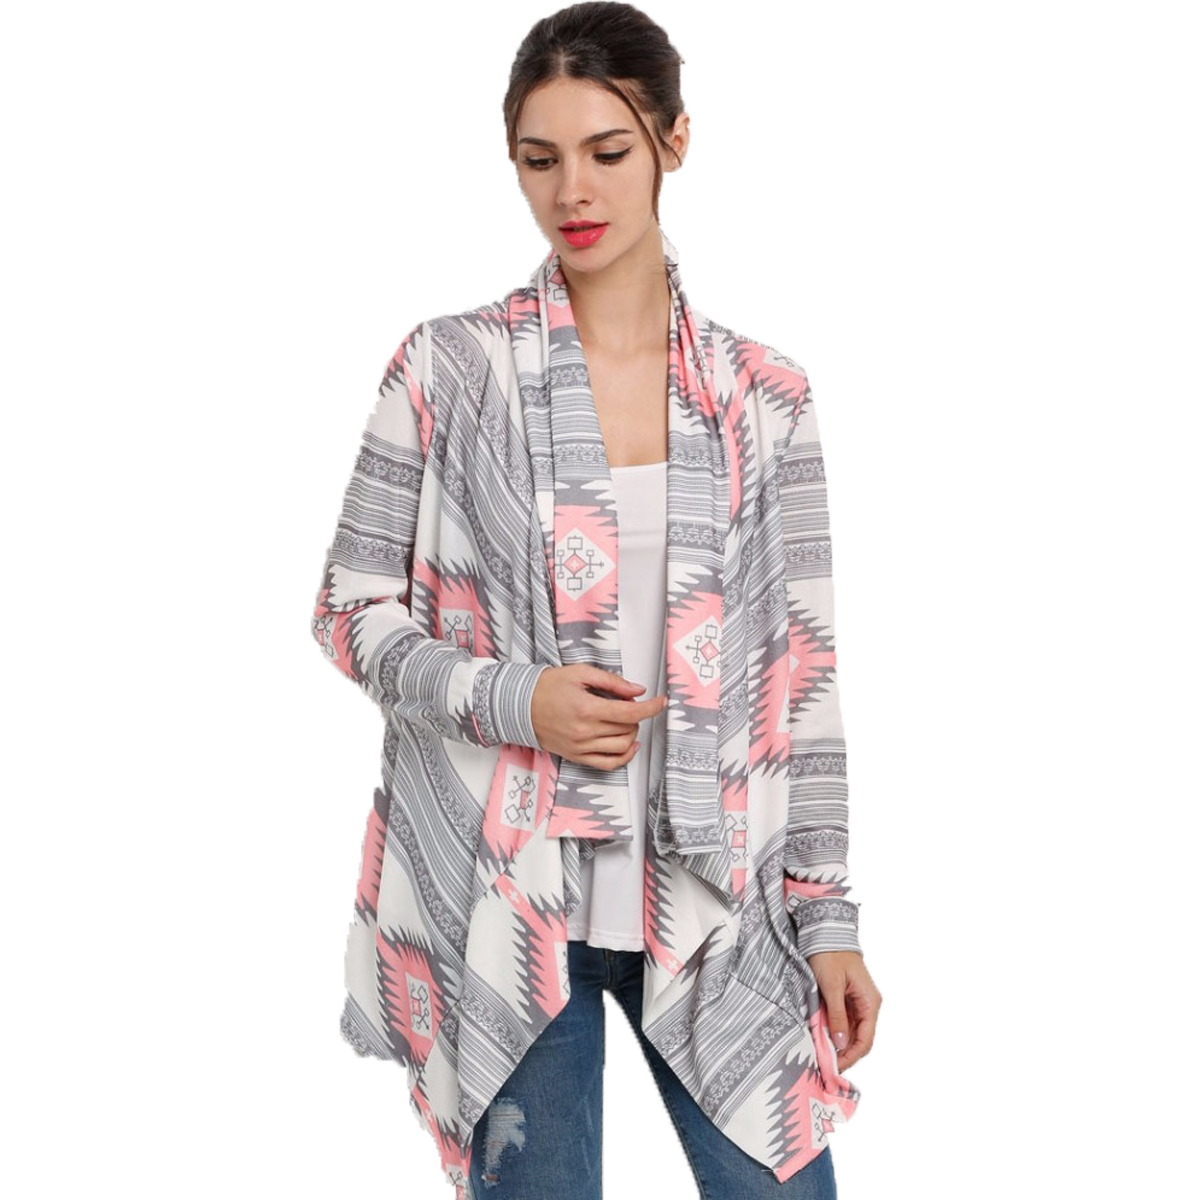 Soft & Asymmetrical Long sleeve Kimono Knitted Cardigans for Women, Pink/Green Thin Sweater Blouse for Ladies, Single Layer Printed Fabric Cover-up Kimono Cardigan Tops